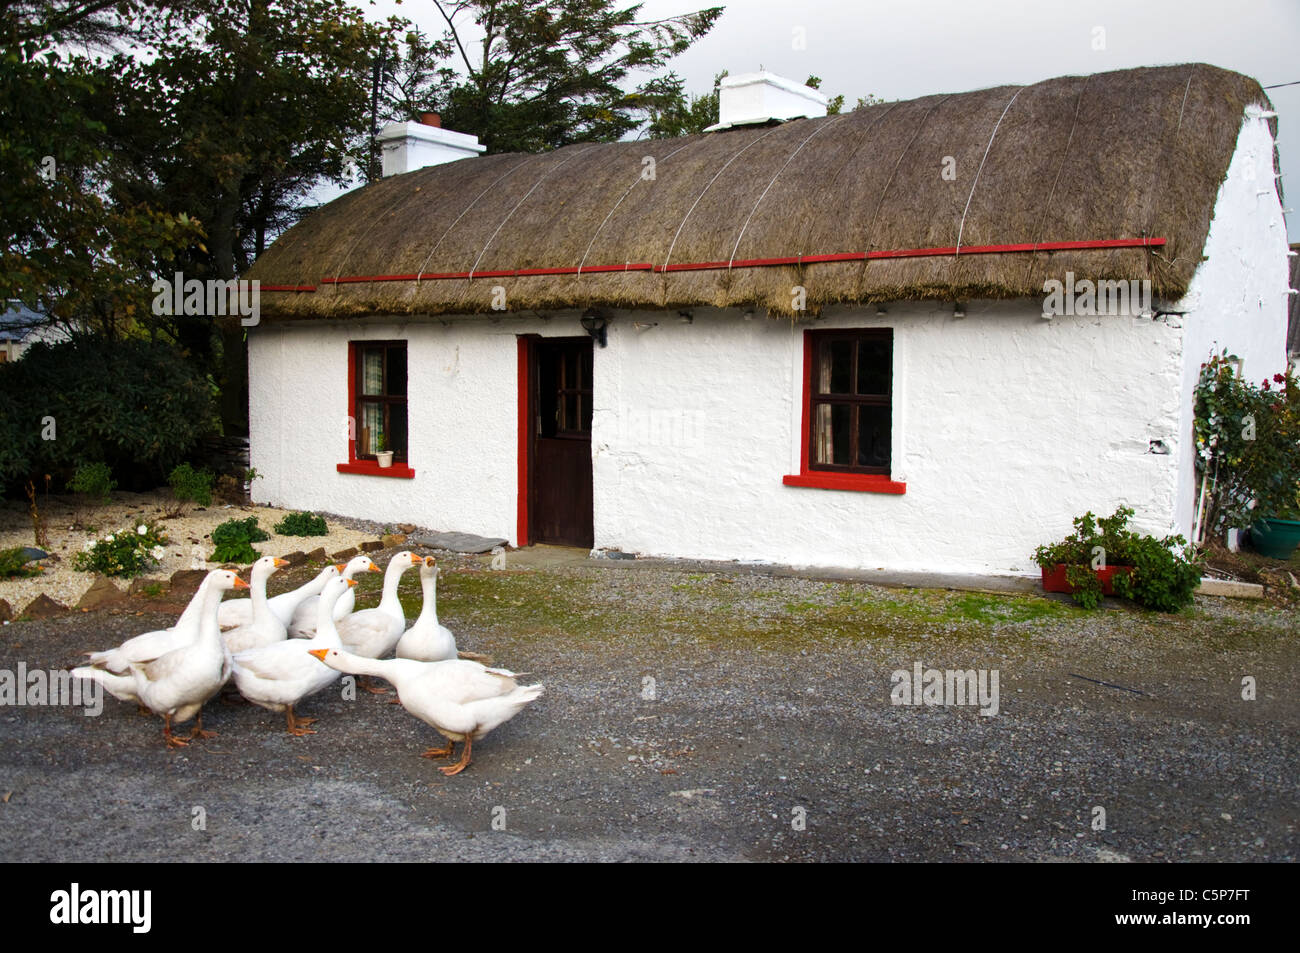 Gaggle of geese outside a traditional thatched irish for Traditional irish cottage designs